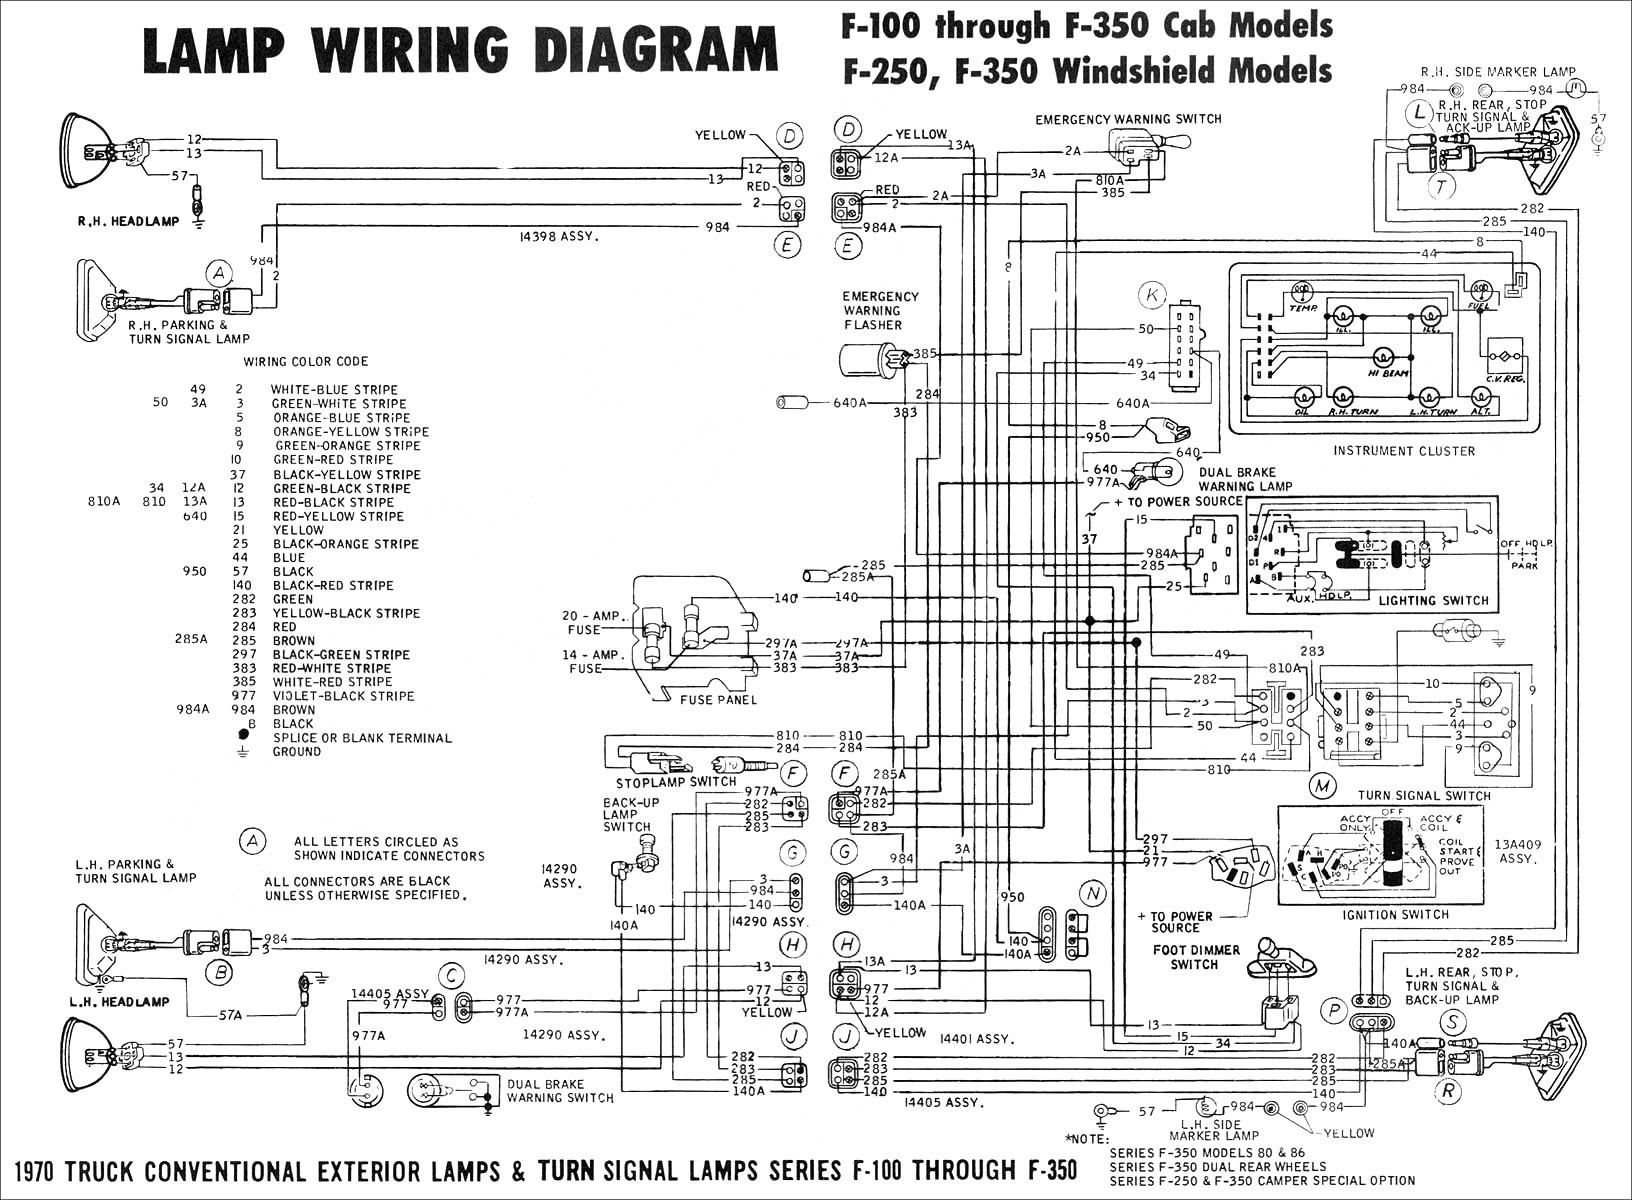 2001 toyota tacoma electrical diagram wiring library Land Cruiser Wiring Diagram 2001 toyota tacoma electrical diagram